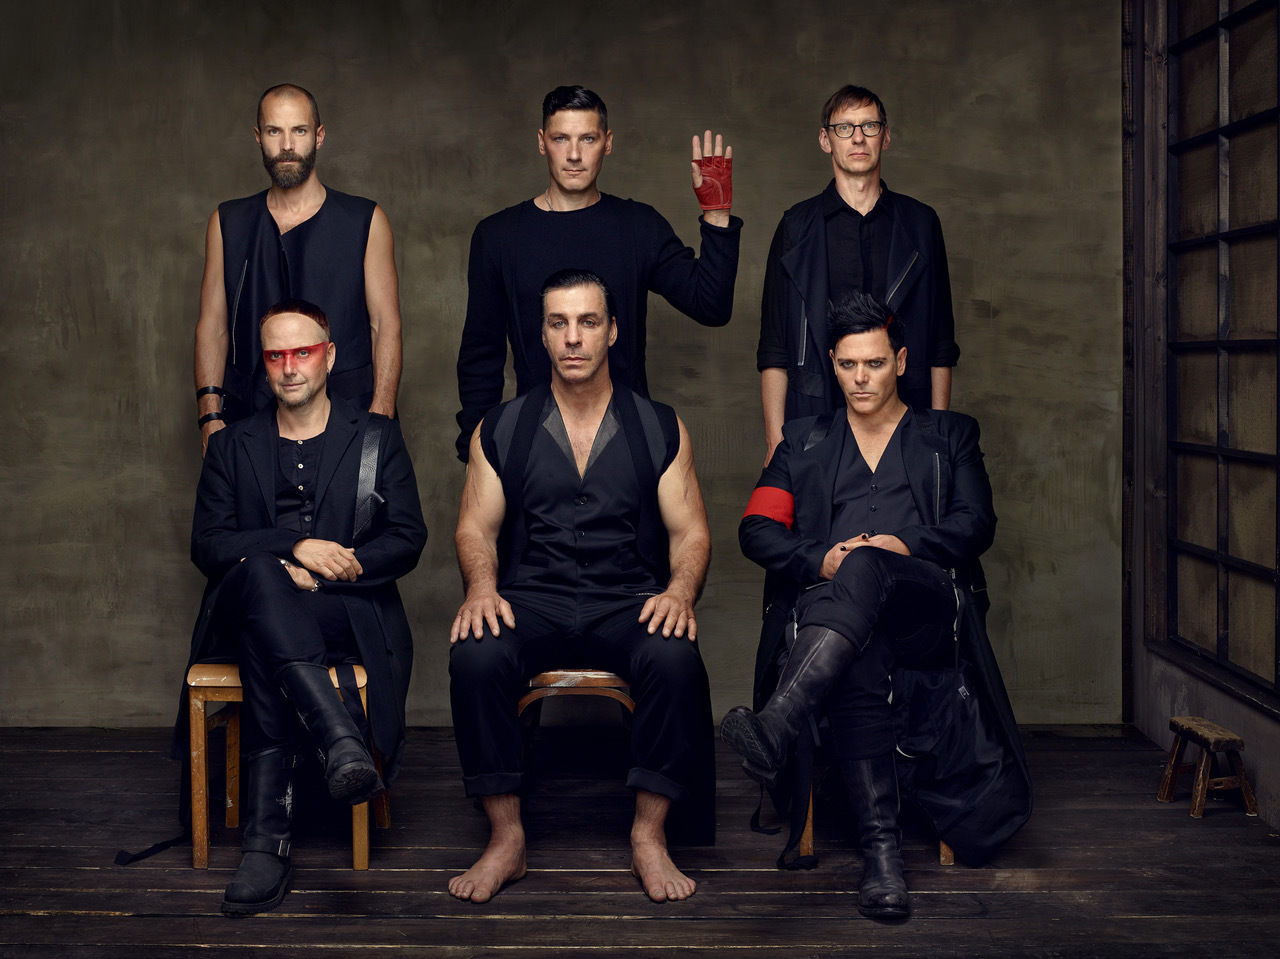 'Rammstein' PR images production by LUNIK GMBH